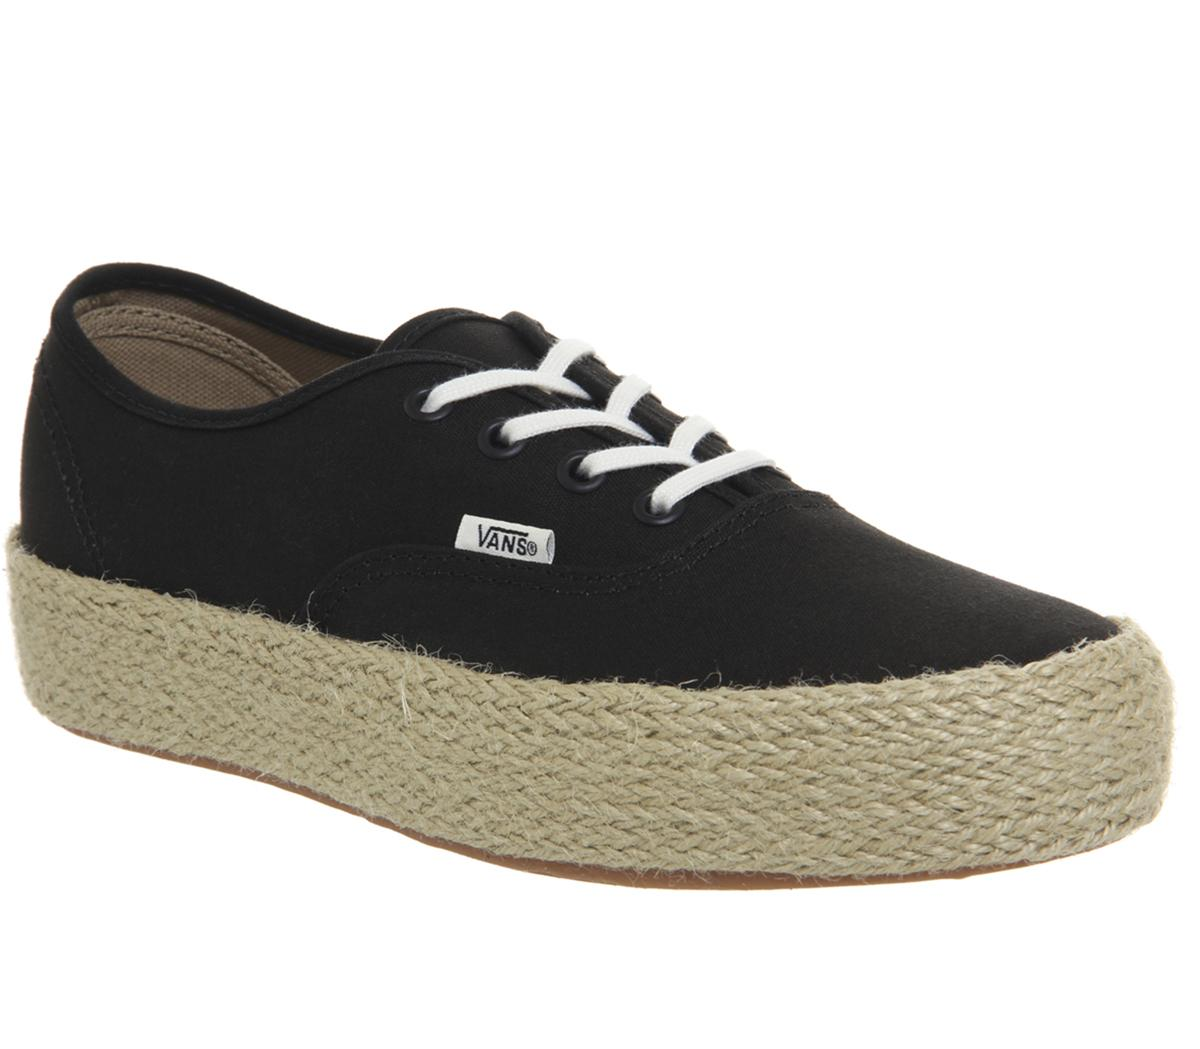 Authentic Platform Espadrilles